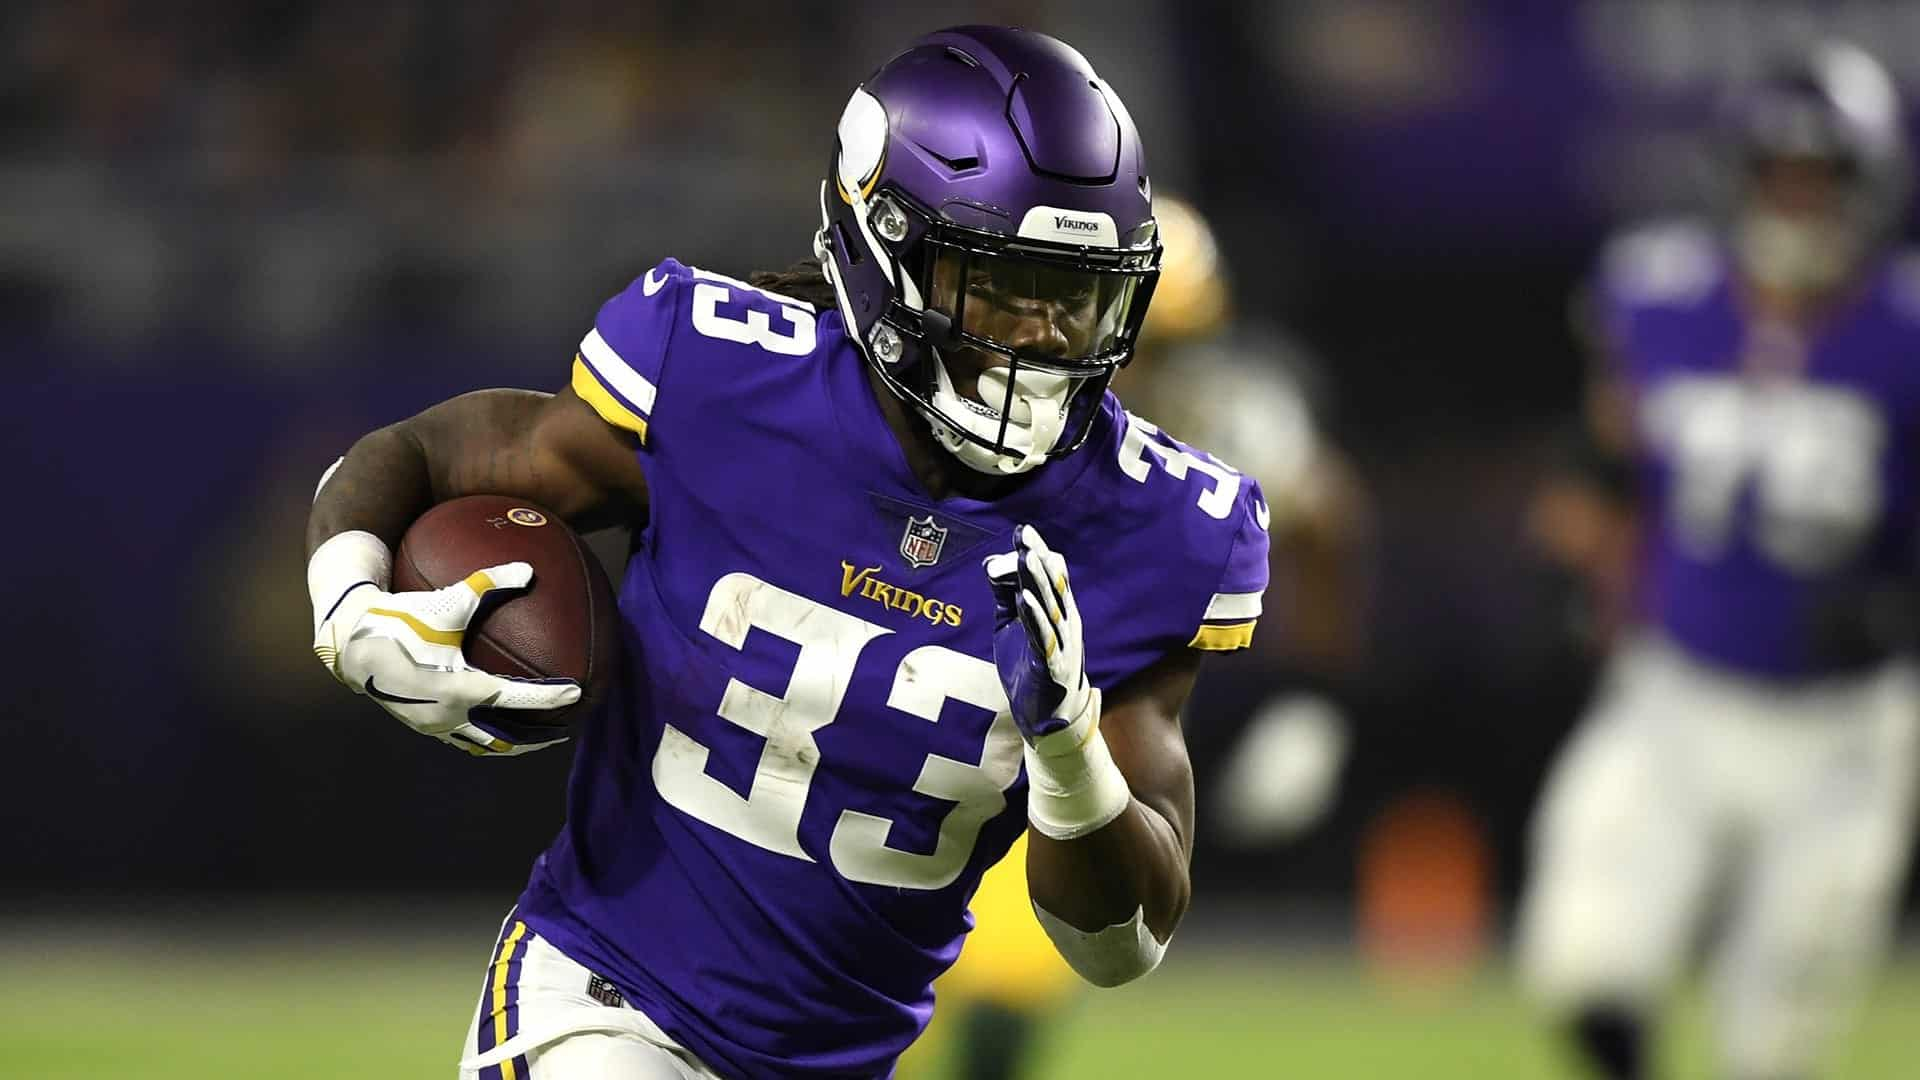 In Dalvin Cook versus the Vikings, Minnesota has the edge